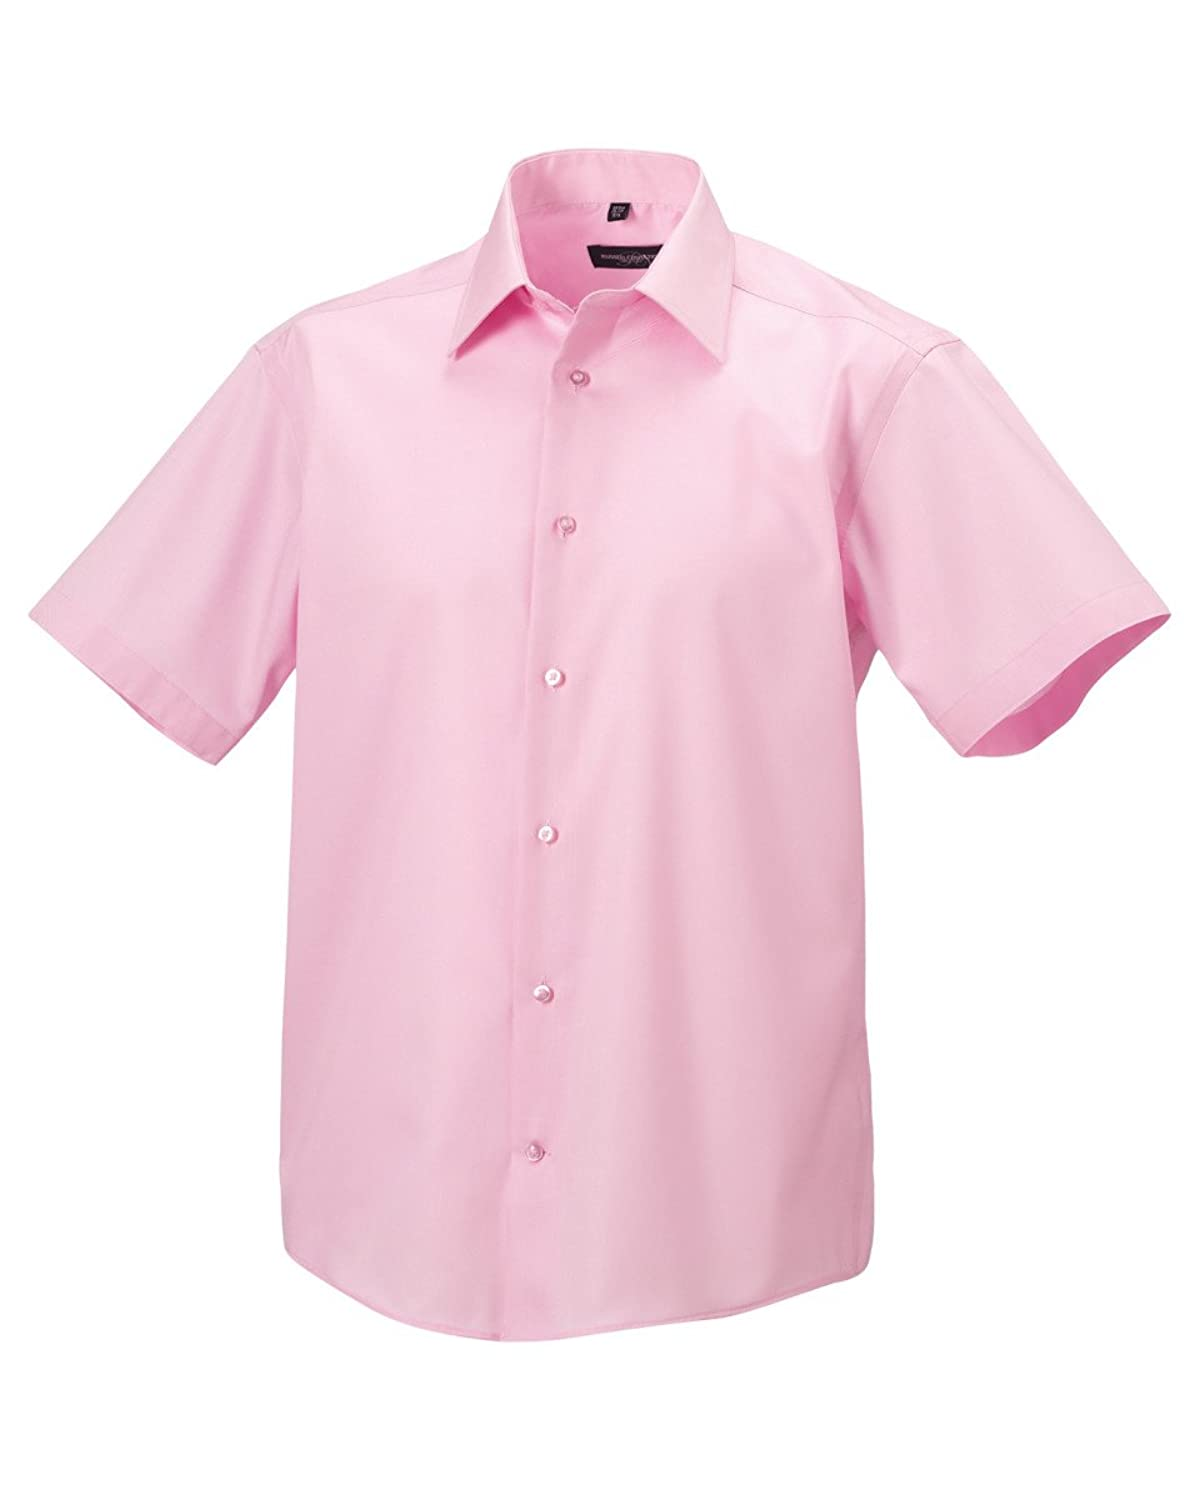 Russell Collection S/S Tailored Shirt-959M